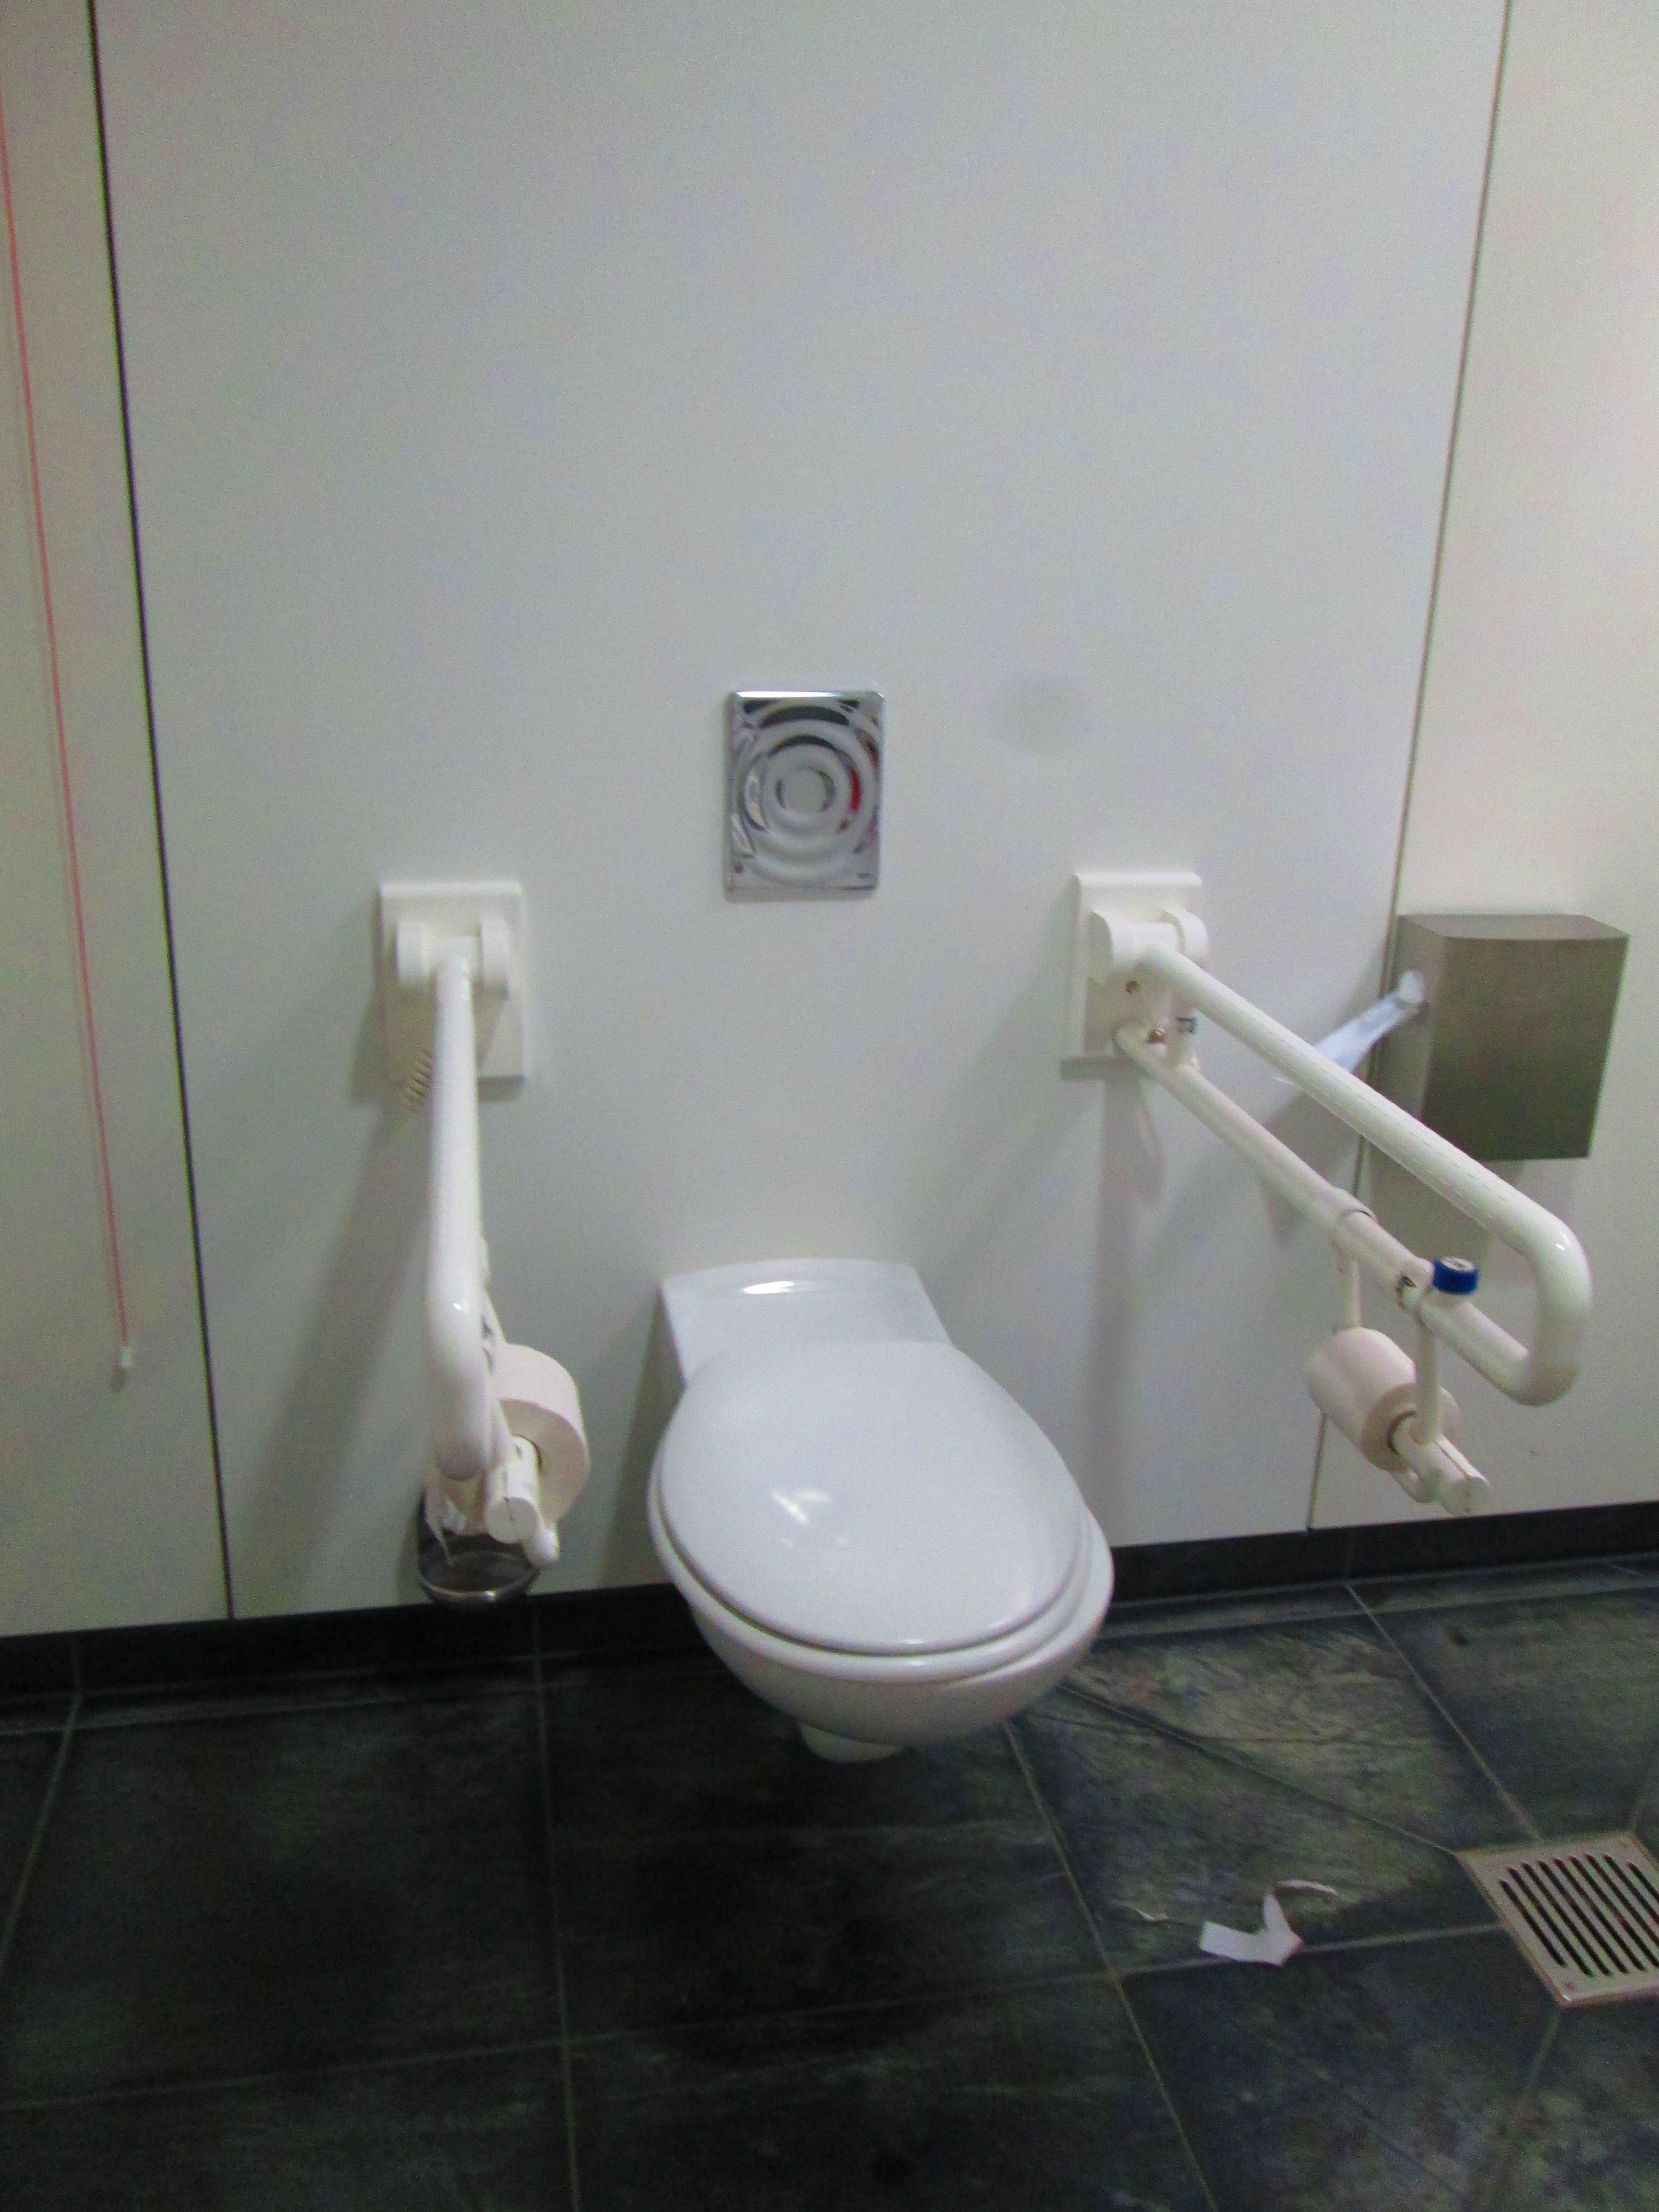 Accessible Restroom In German Museum Complete With Drop Down Grab Bars Around The Toilet For Assistance Accessible Bathroom Toilet Restroom